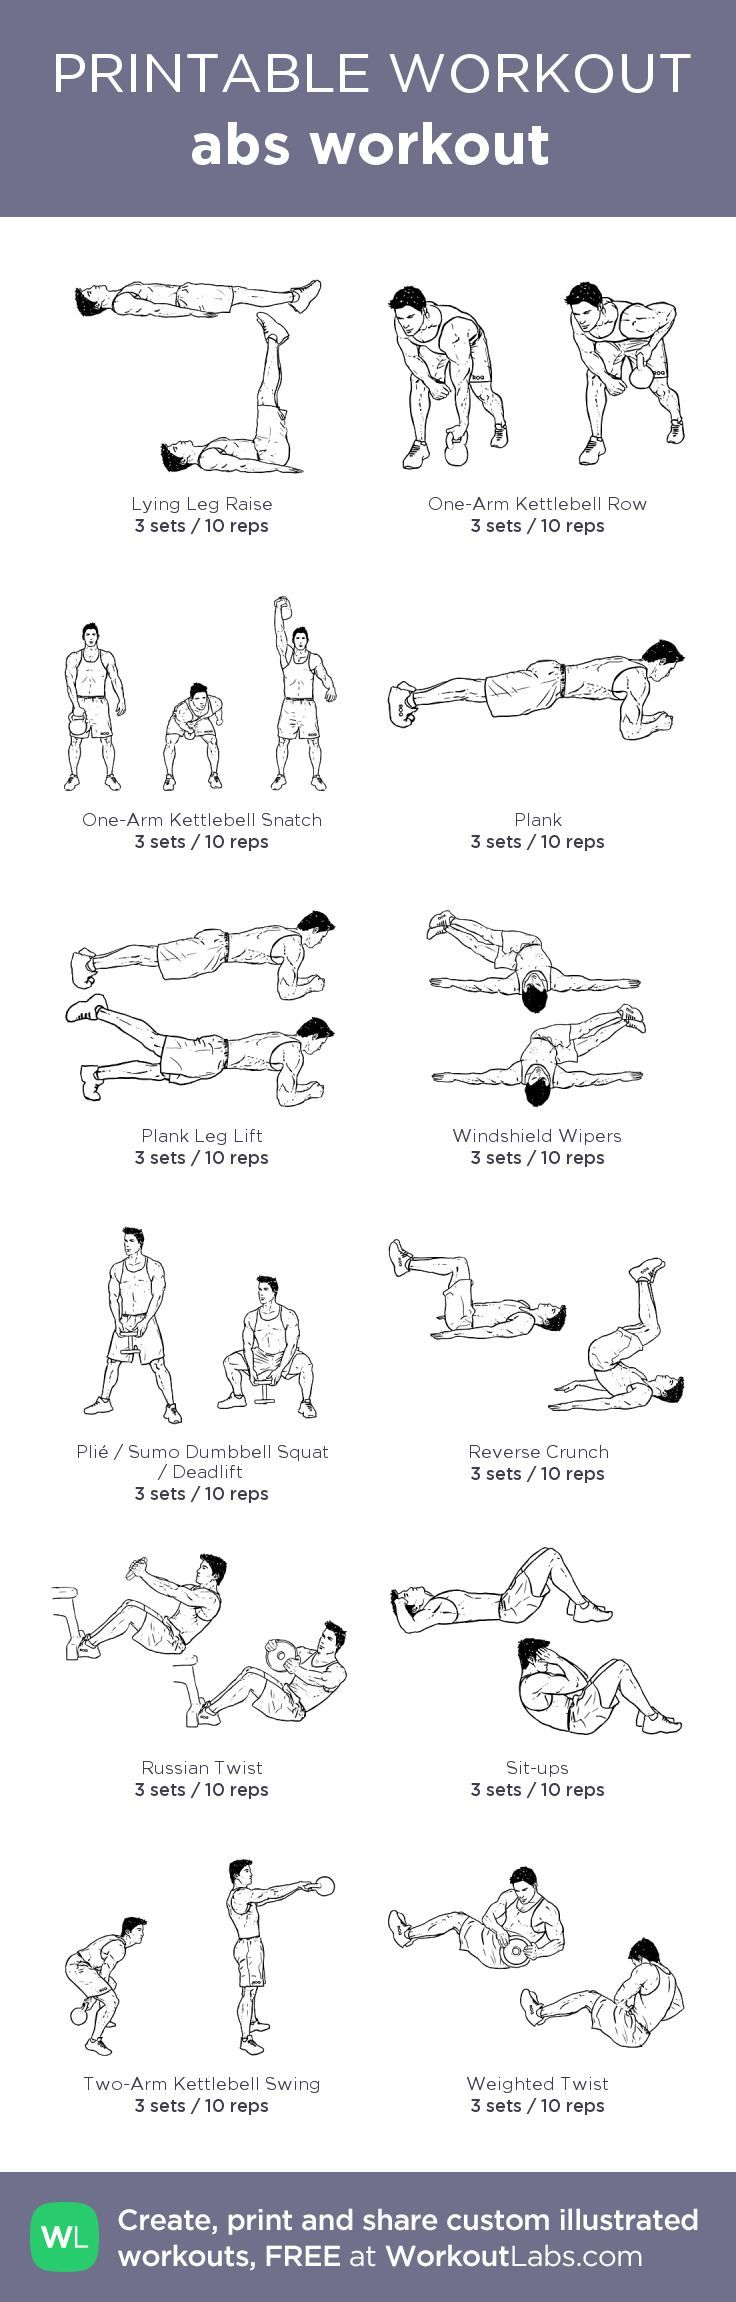 Pin by David Stempels on Fitness | Ab workout men, Printable